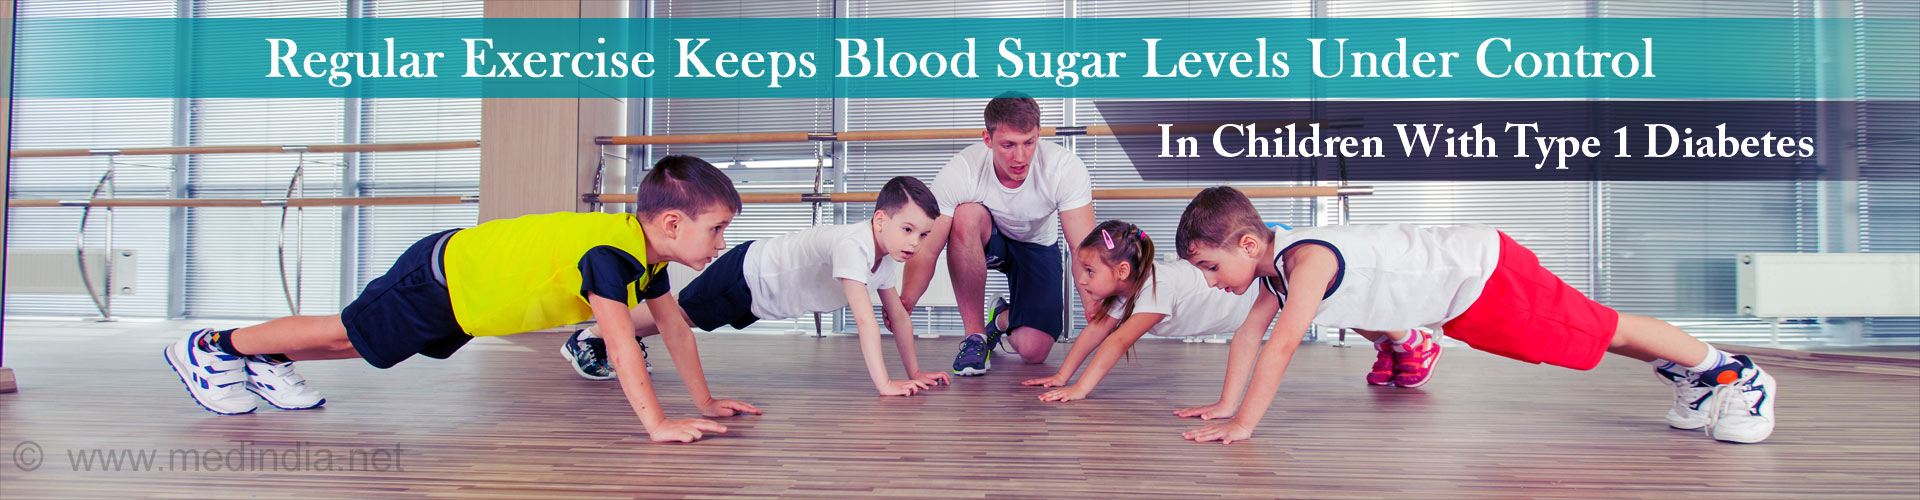 Regular exercise keeps your blood sugar level under control